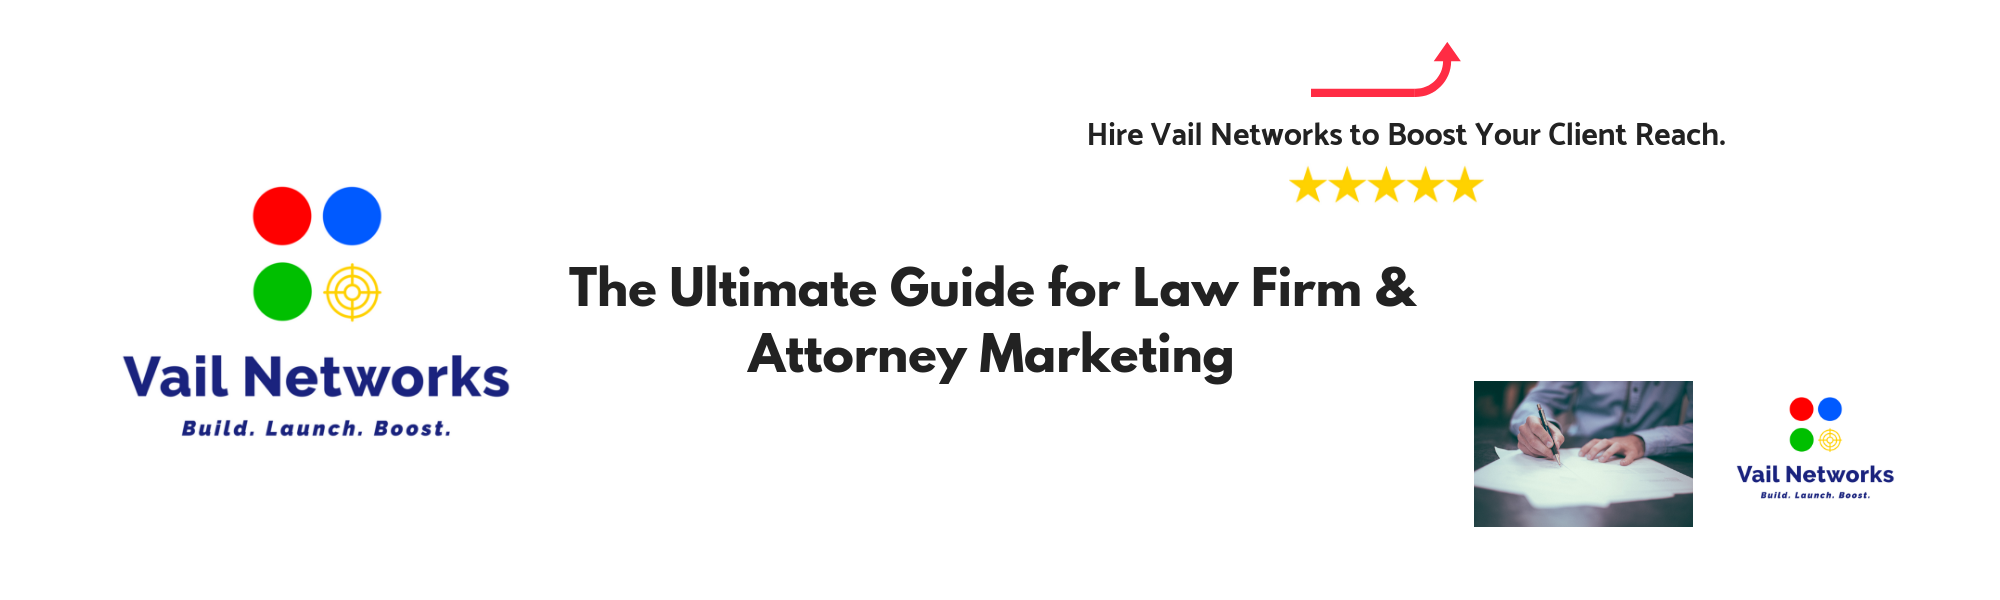 The Ultimate Guide for Attorneys and Law Firm Marketing and